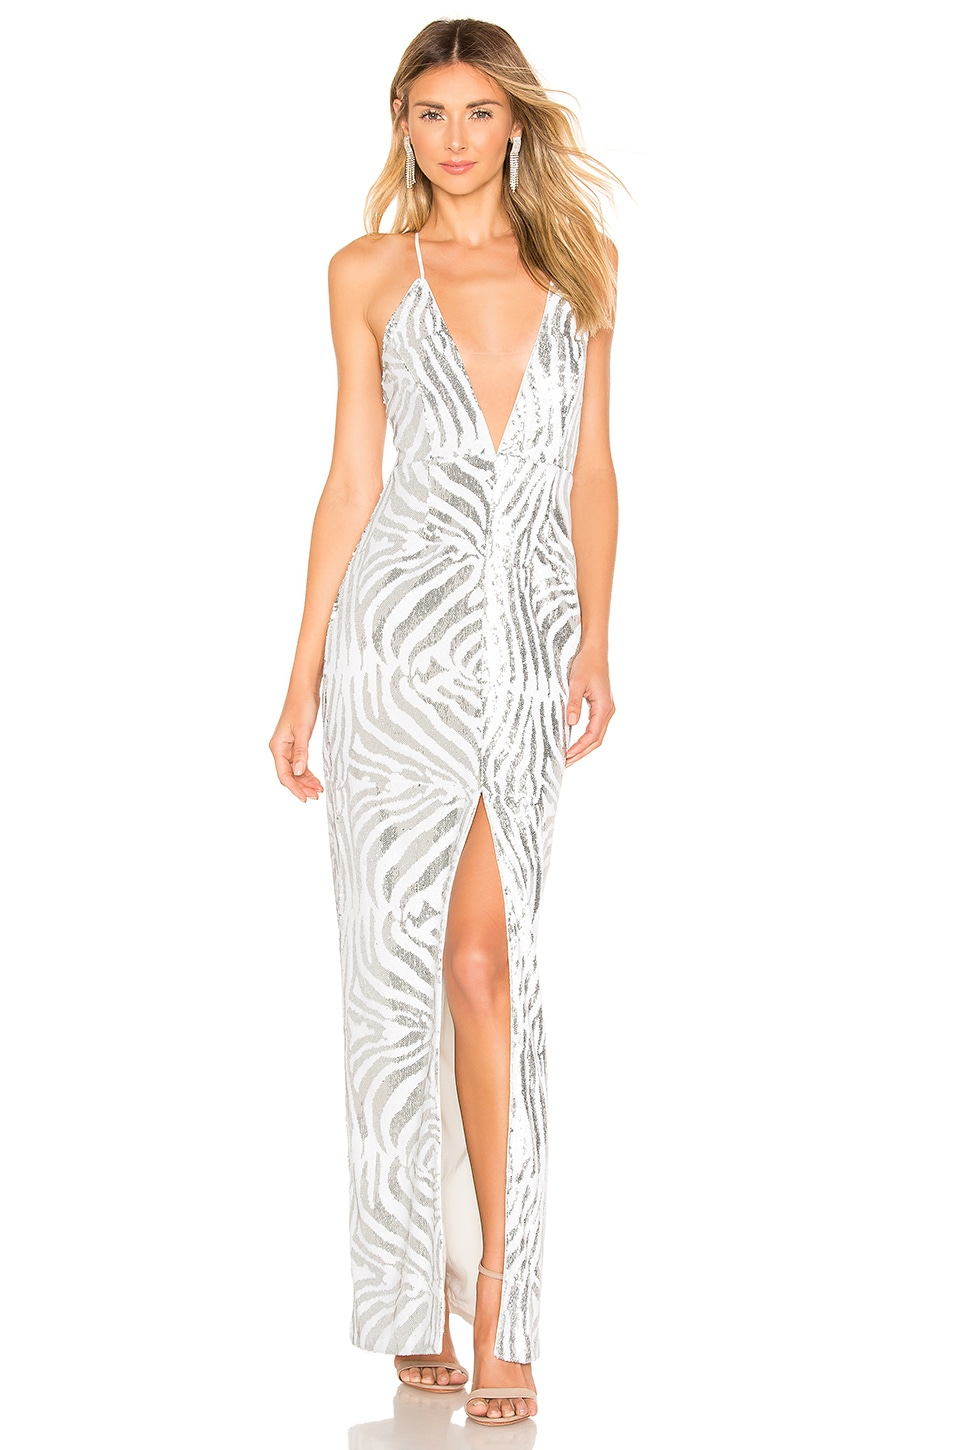 X by NBD Yoshi Gown in Silver & White